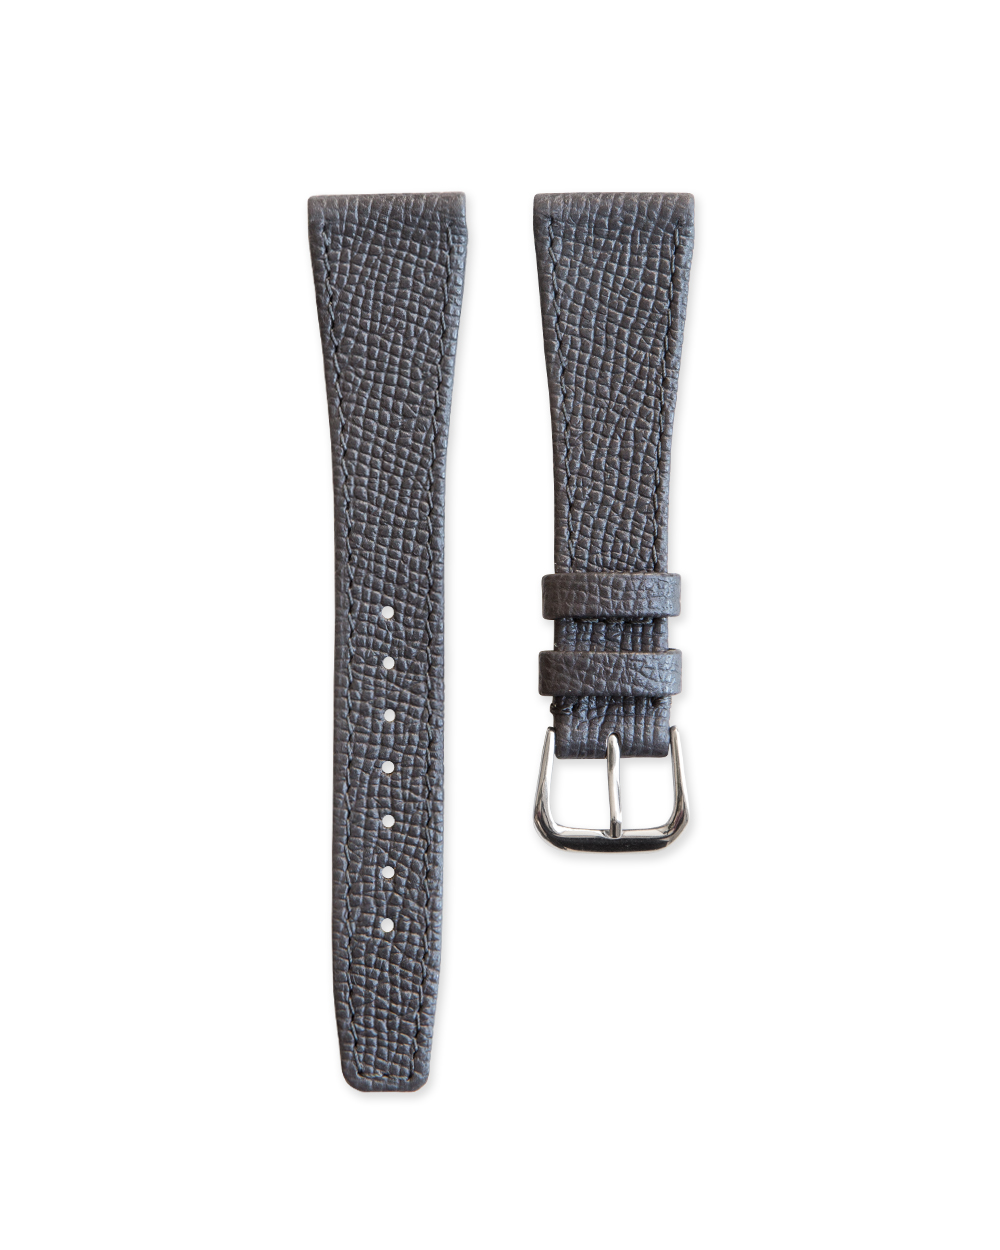 SERICA Watch Straps 1953 Charcoal